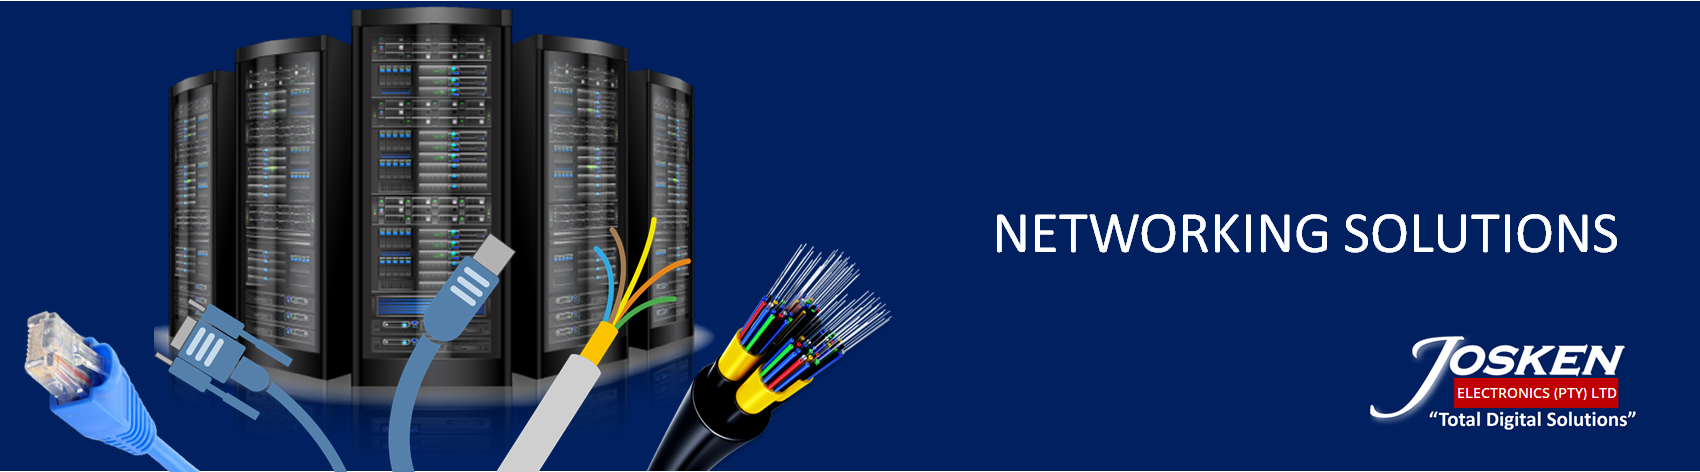 NETWORKING-BANNER